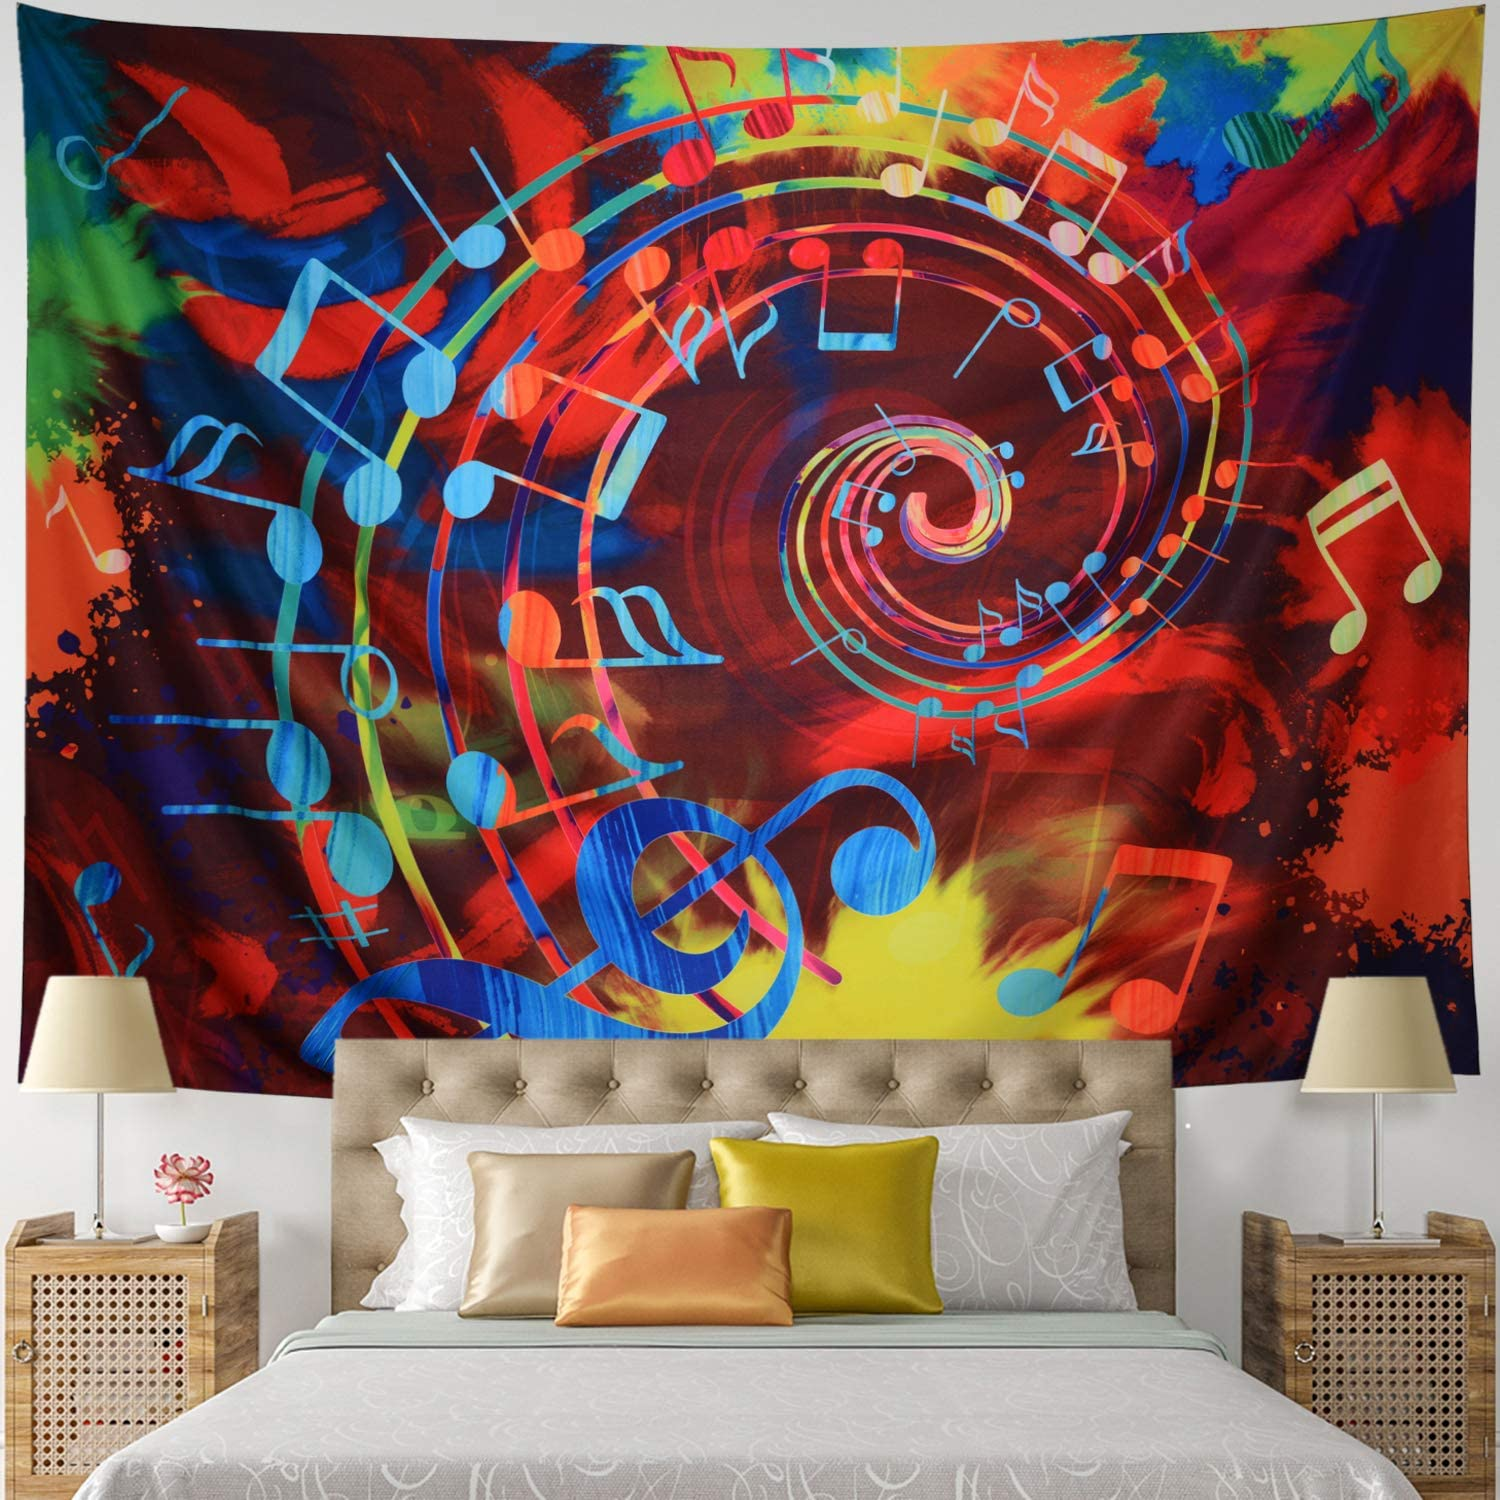 Leofanger Music High quality new Tapestry Wall Decor shopping Hanging Note